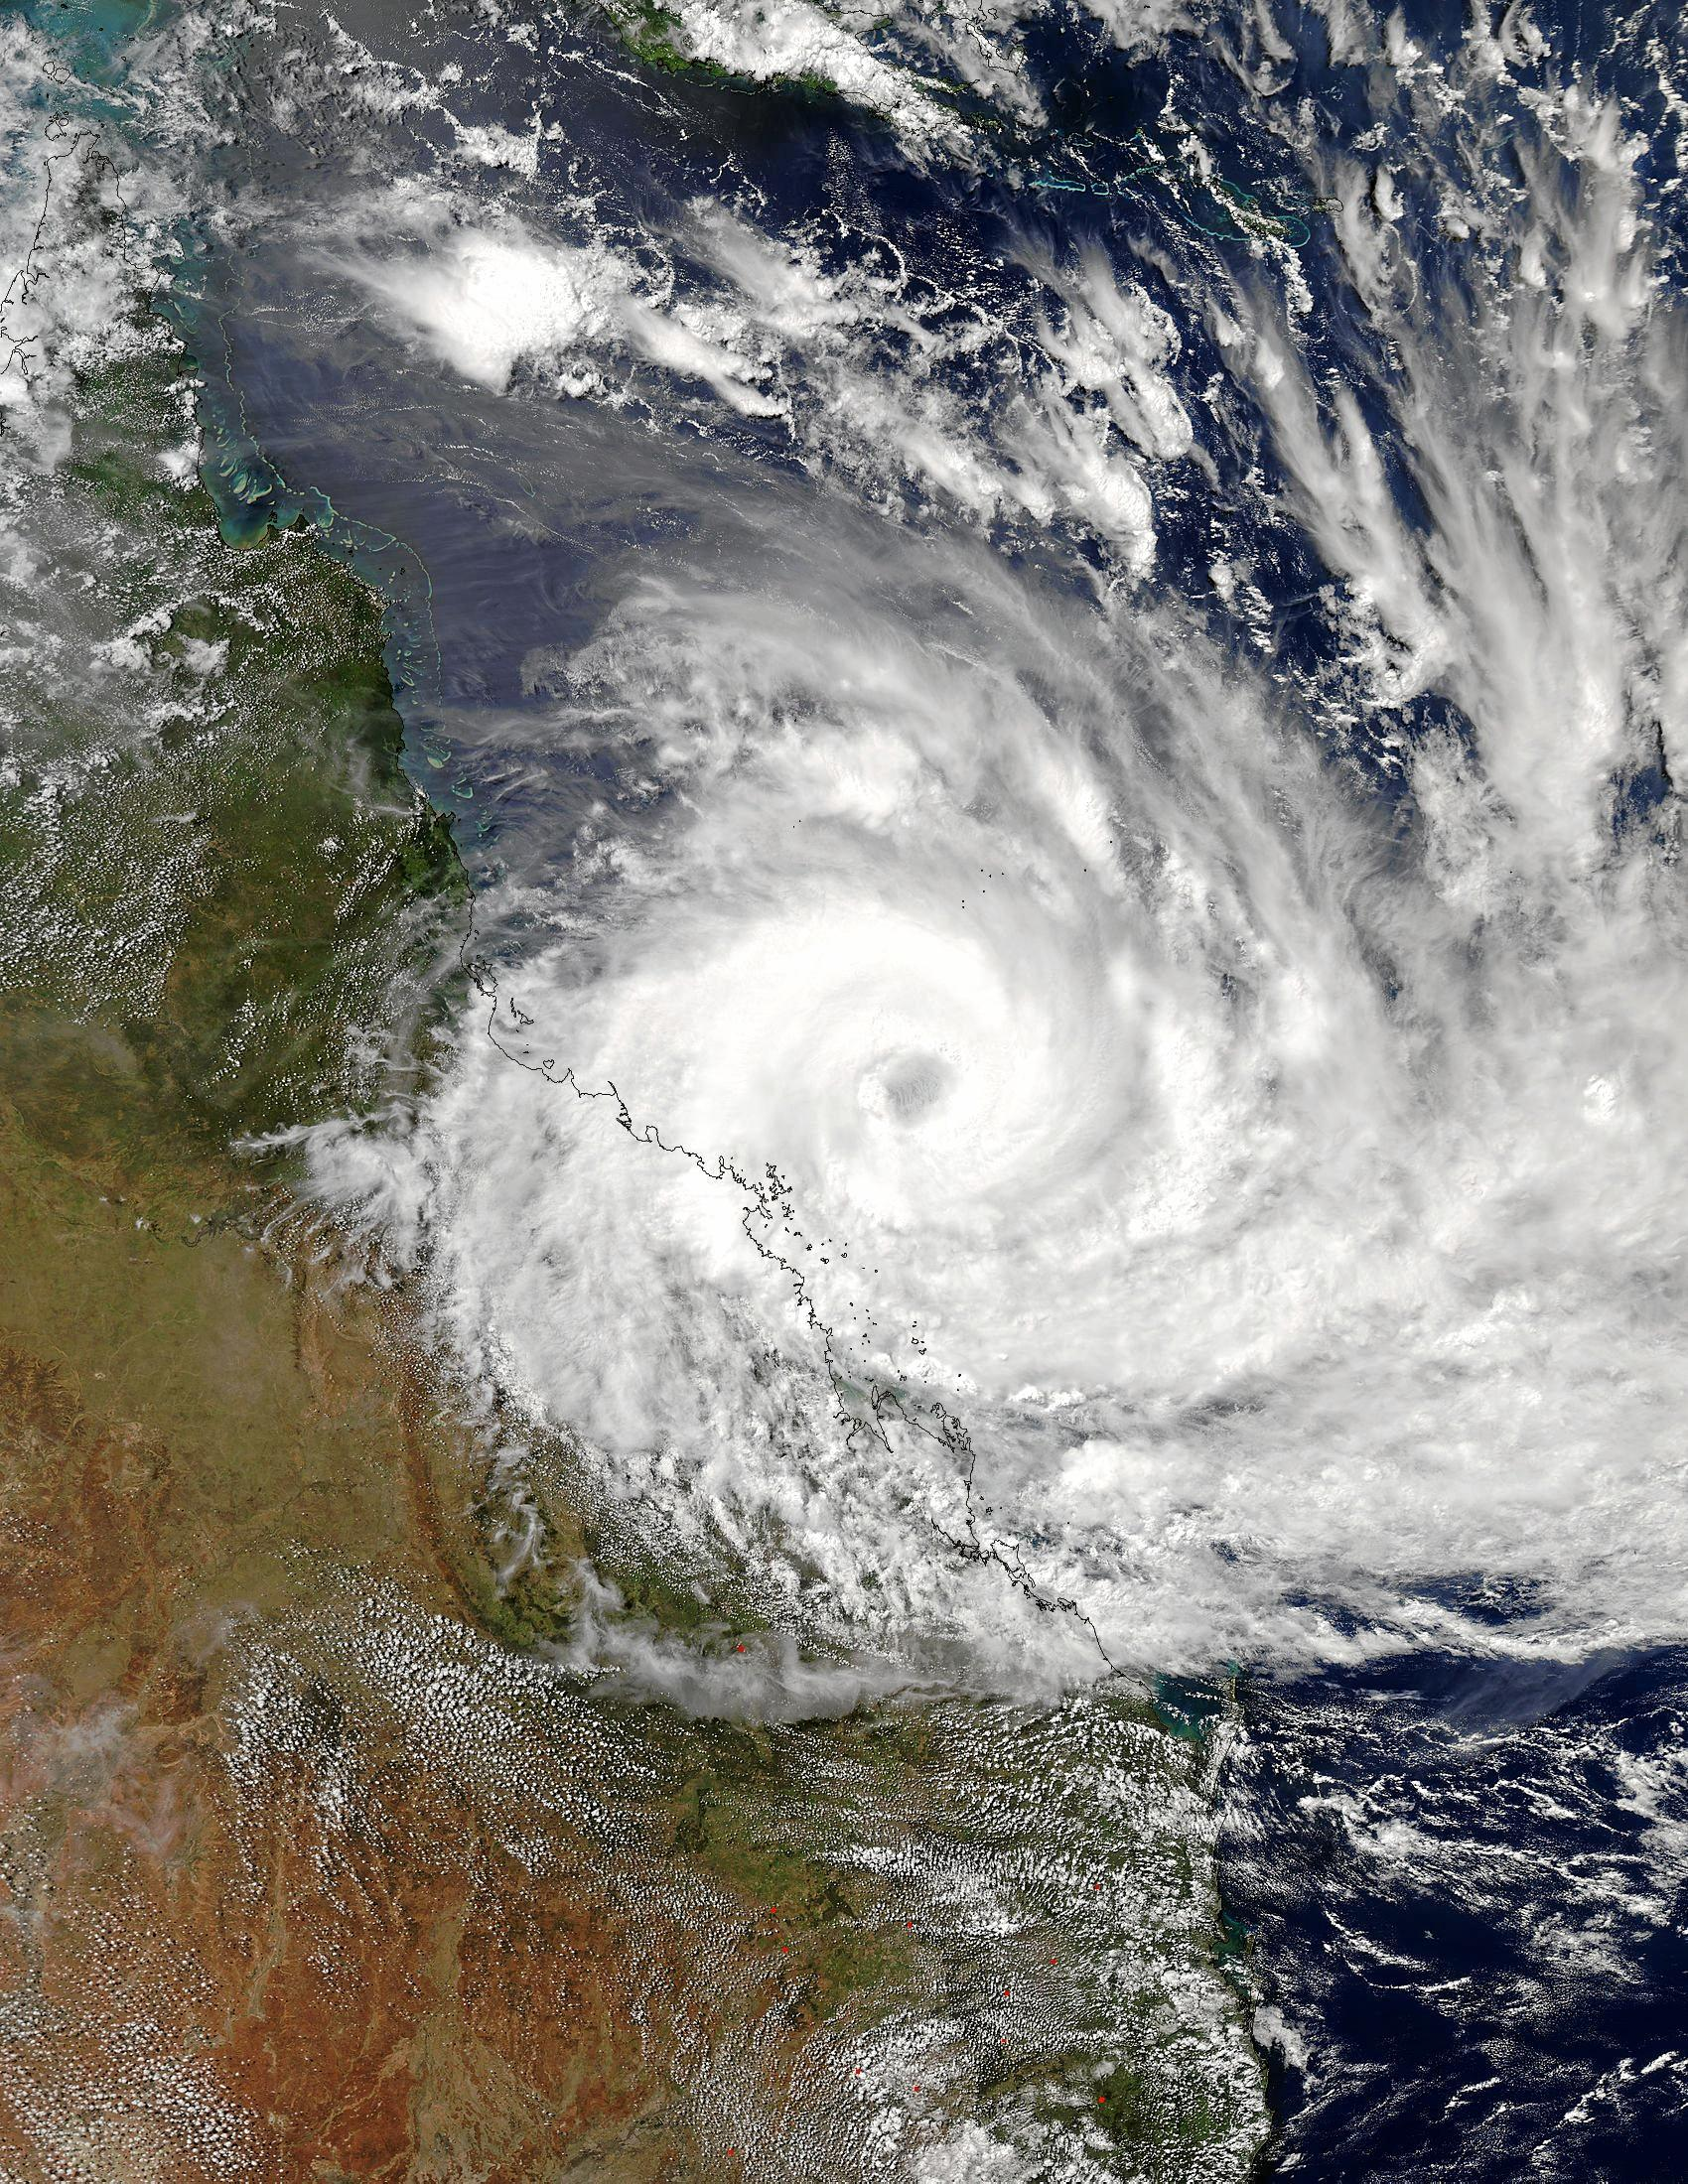 This is a visible image of Tropical Cyclone Debbie along the Queensland coast as seen from the MODIS instrument aboard NASA's Aqua Satellite. The image was taken on March 27 at 0350 UTC.